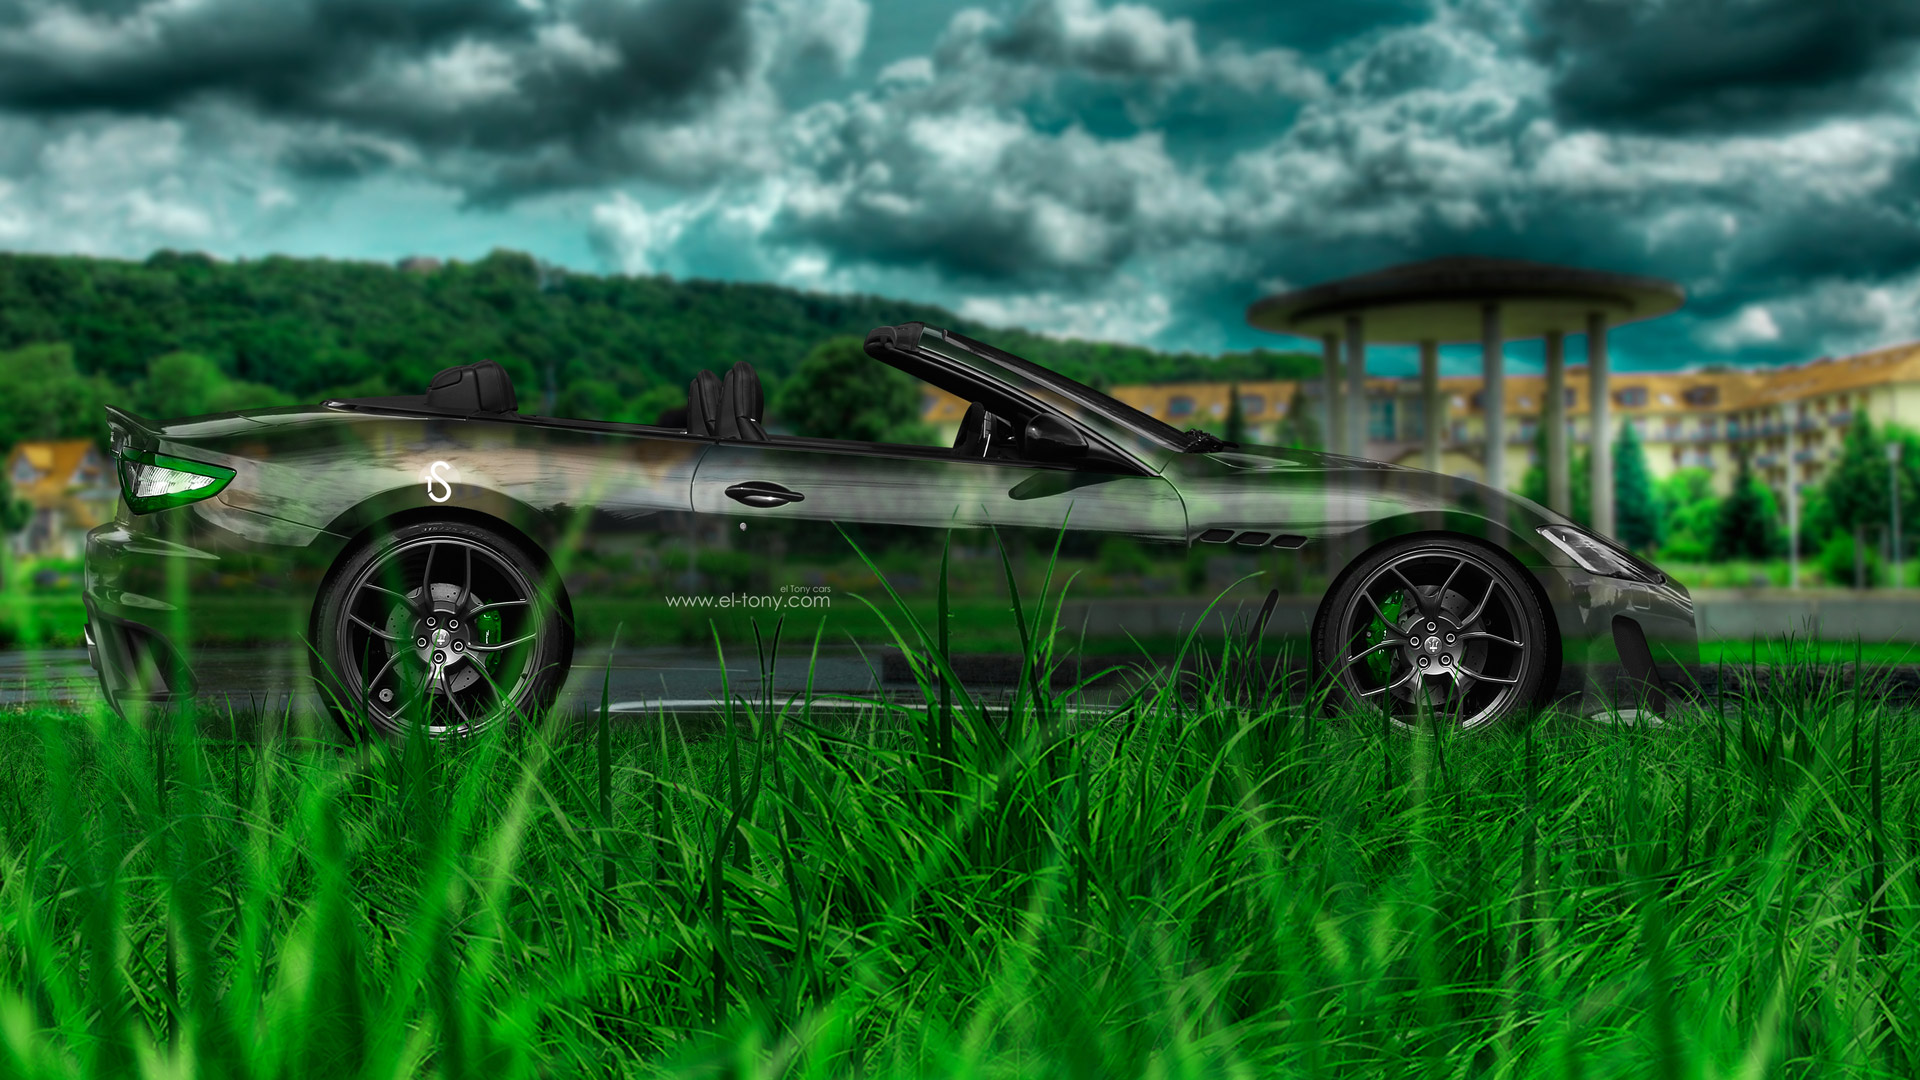 Genial Maserati GranCabrio Side Crystal Nature Car 2014 HD